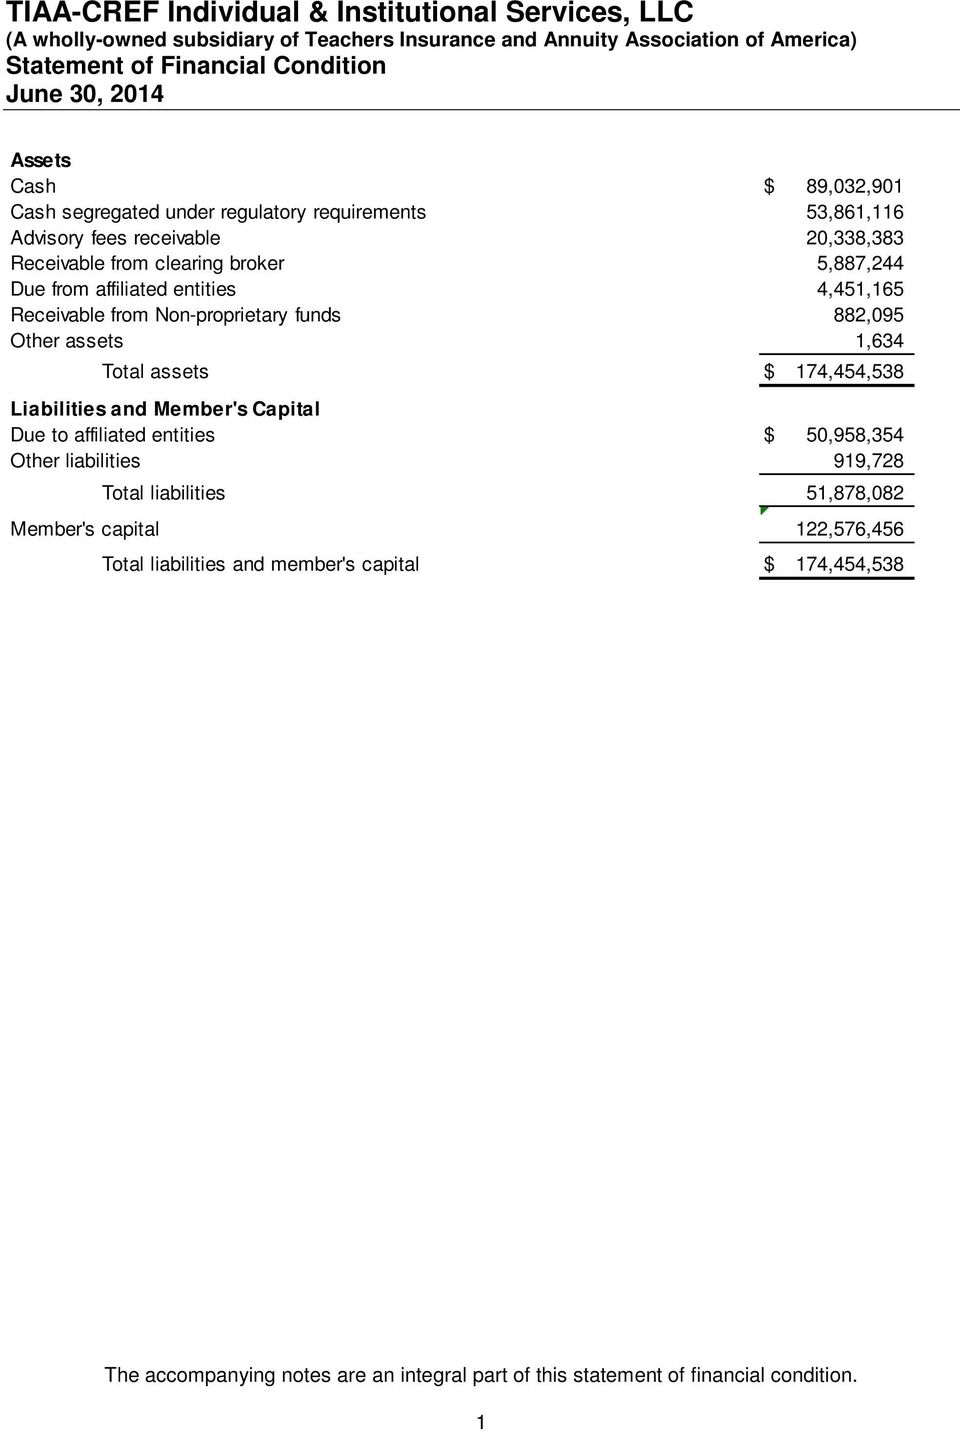 assets $ 174,454,538 Liabilities and Member's Capital Due to affiliated entities $ 50,958,354 Other liabilities 919,728 Total liabilities 51,878,082